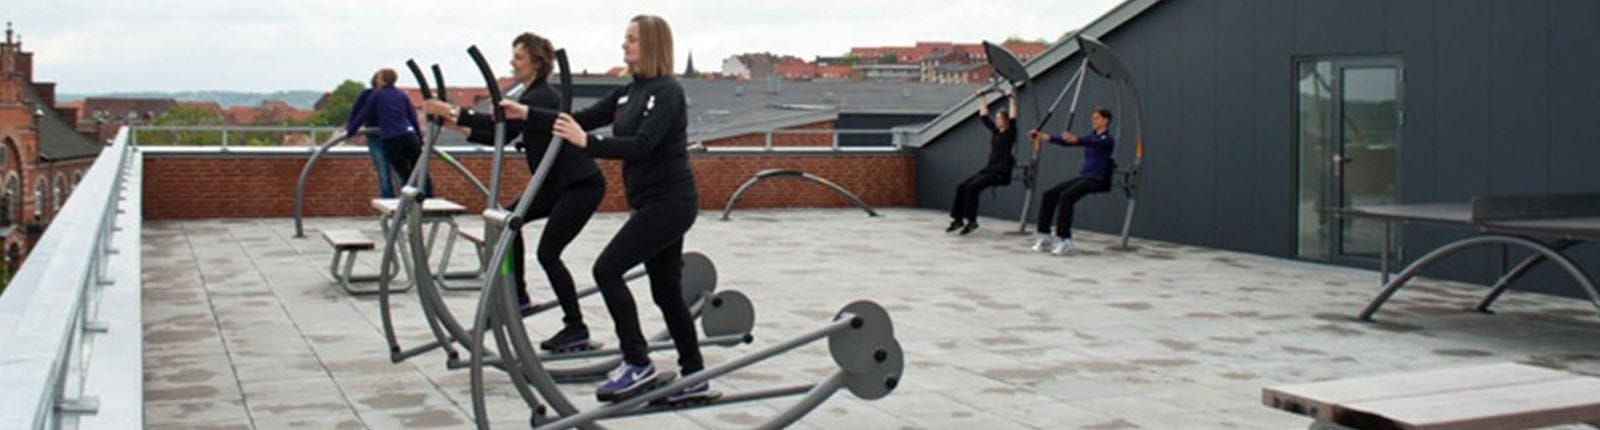 Norwell People Using Outdoor Exercise Equipment   Sterling West